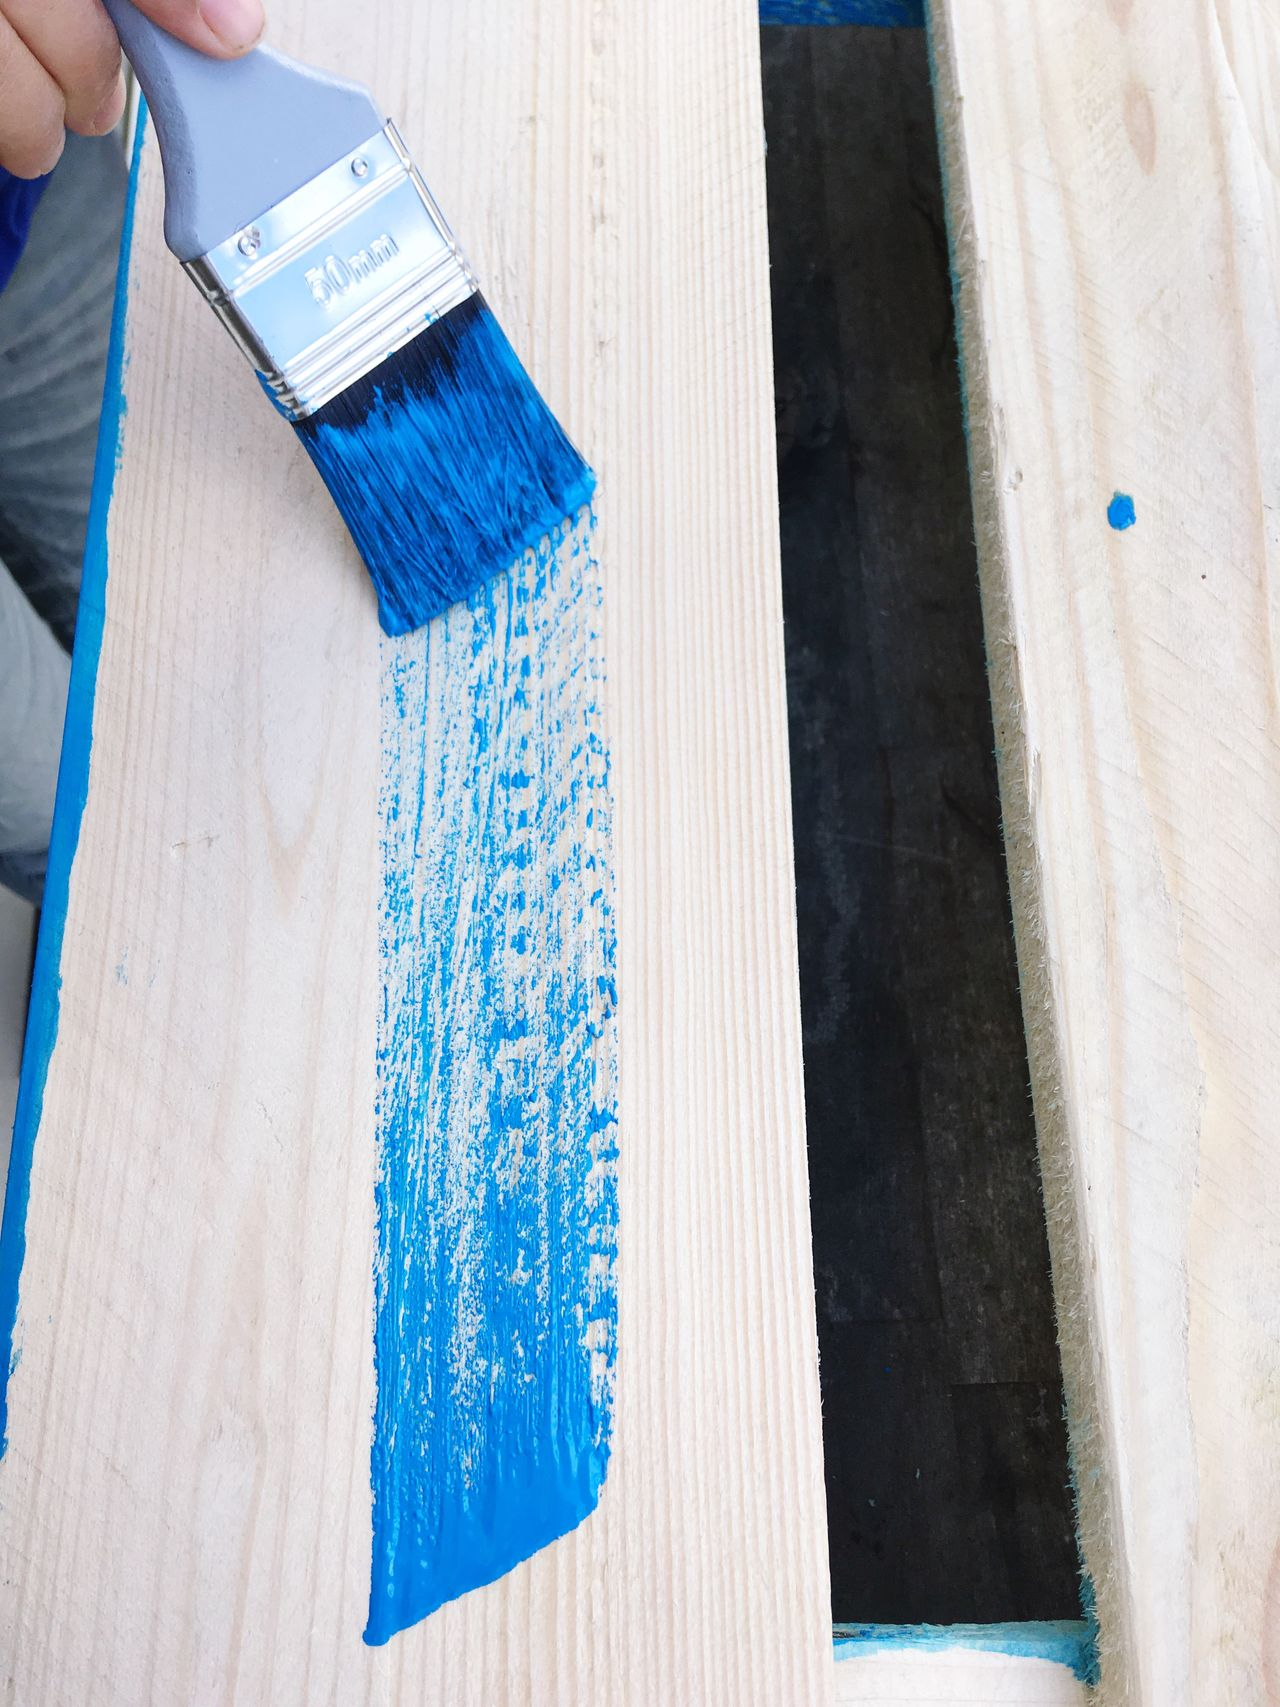 Blue Textile Indoors  Day One Person Close-up People Work Tool Working Painting Blue Paint Brush